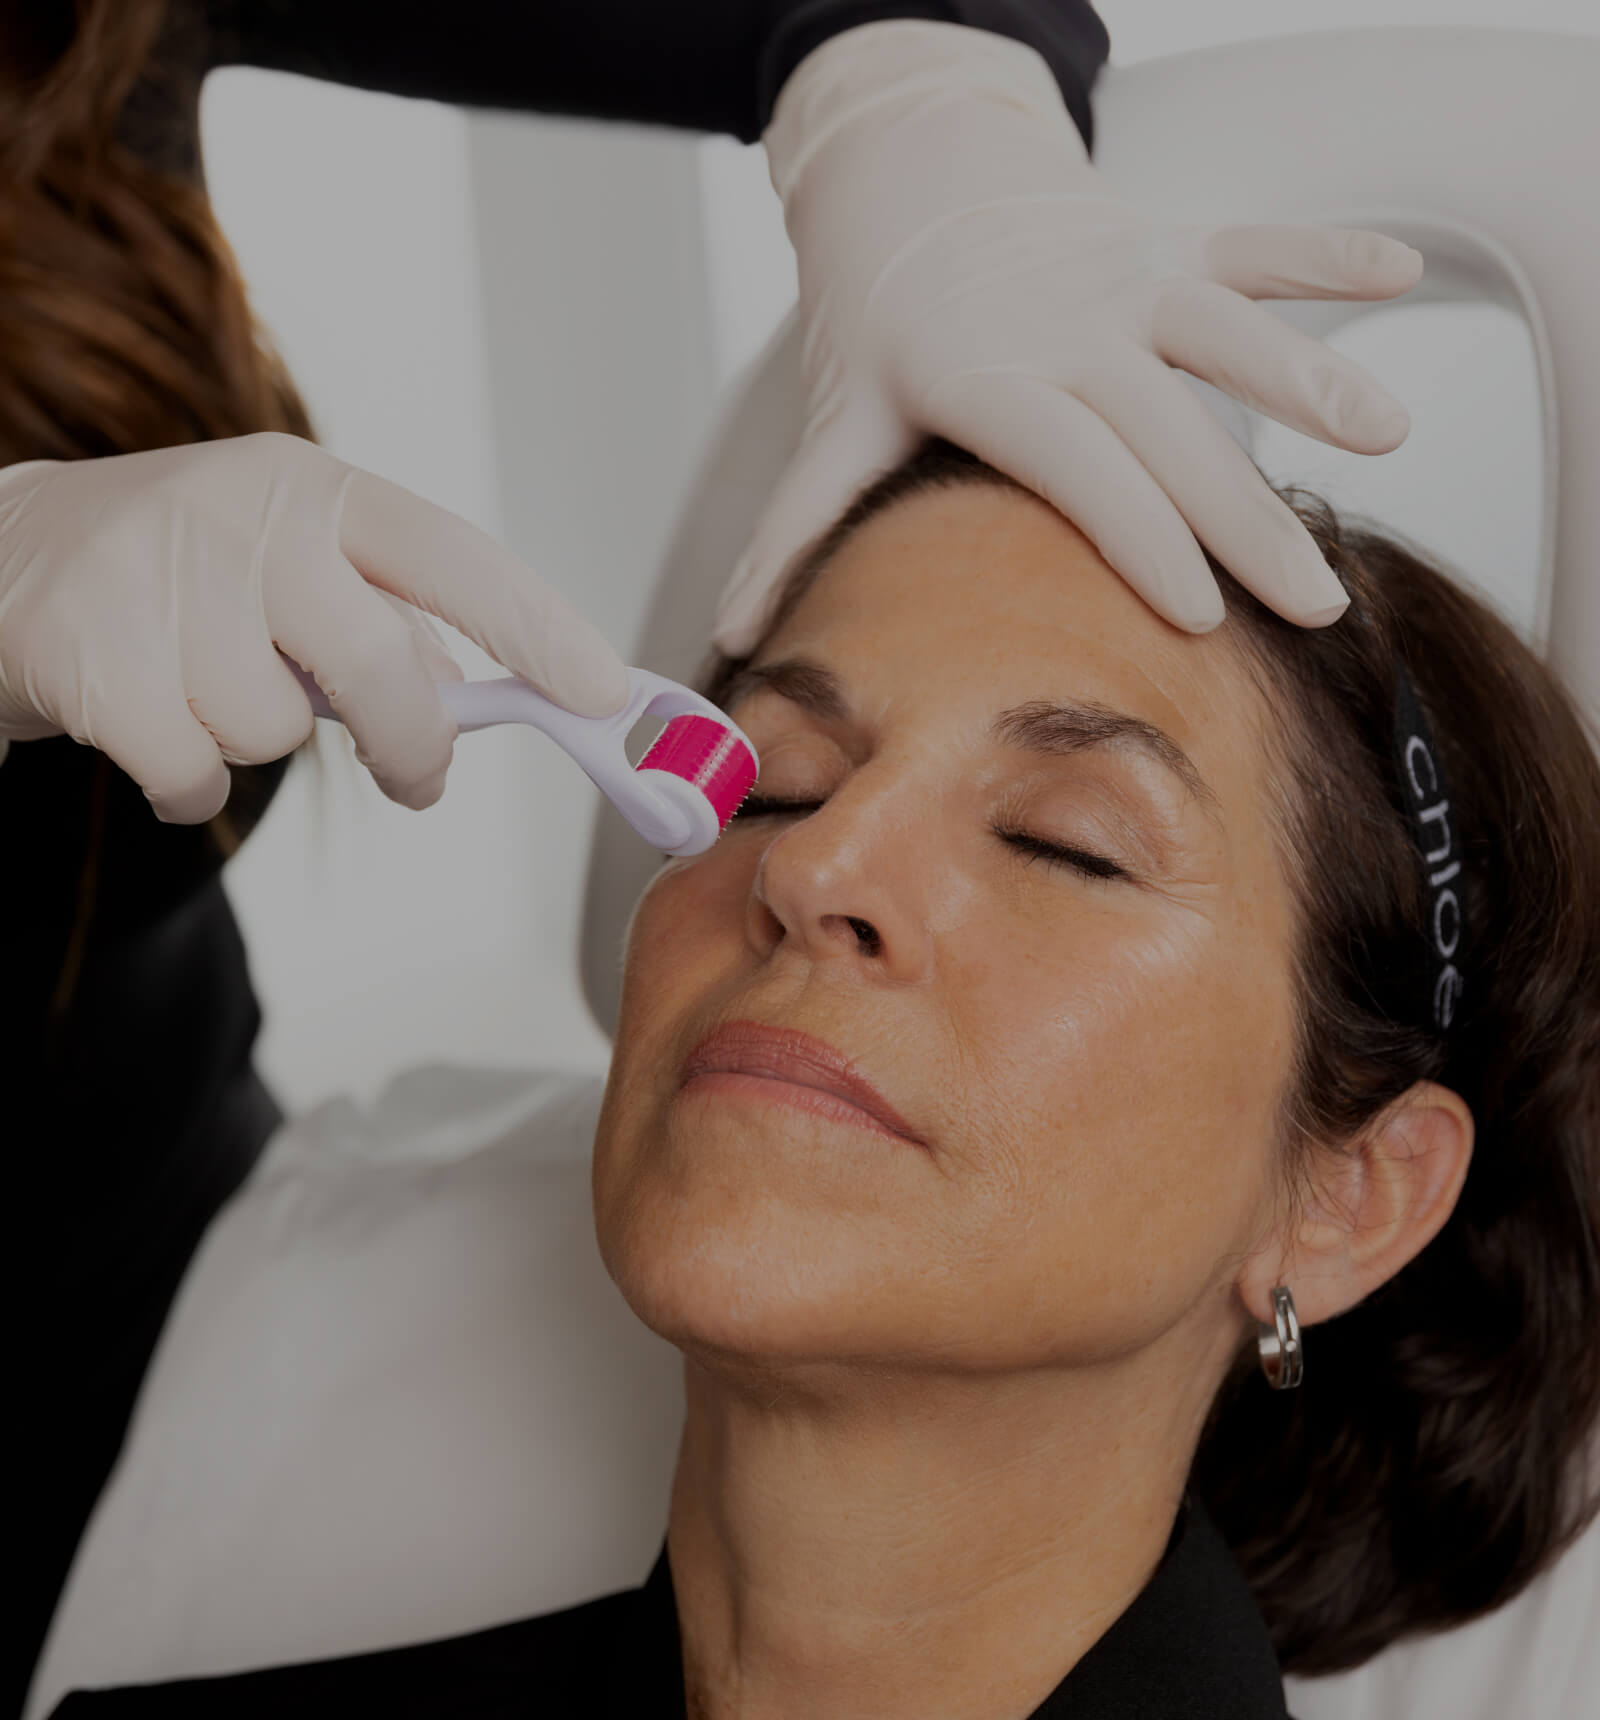 A medico-aesthetic technician from Clinique Chloé performing a microneedling treatment on a female patient